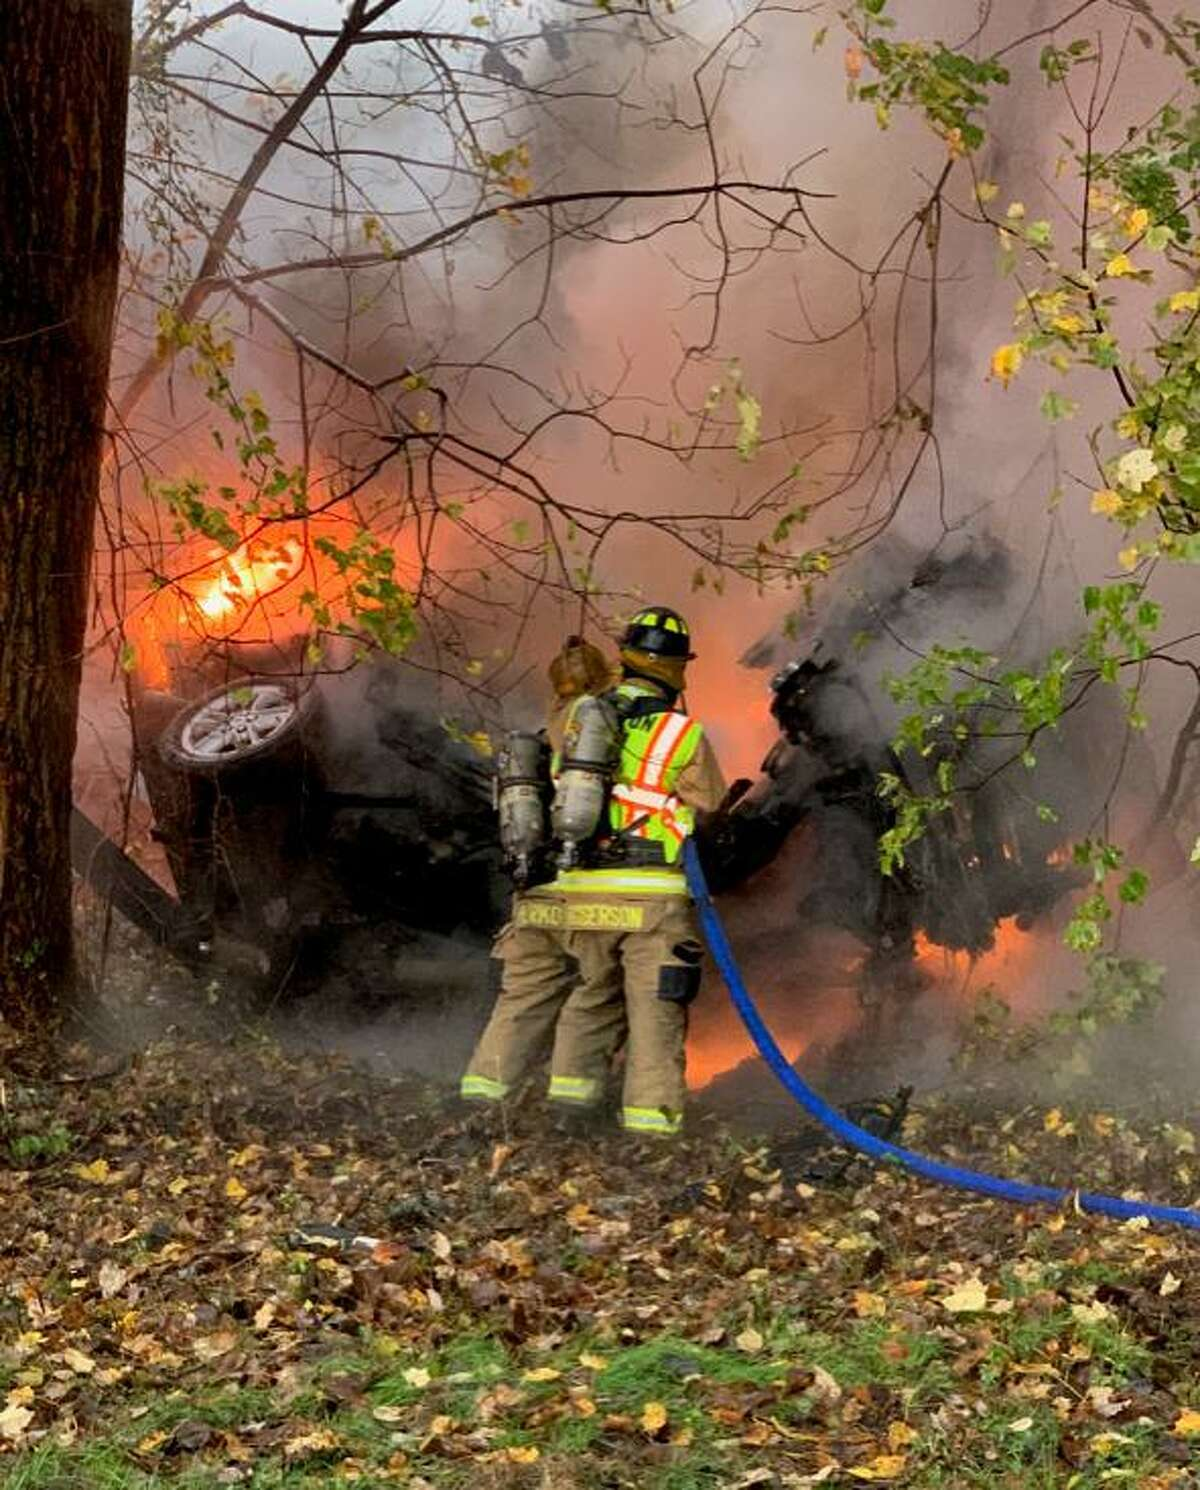 Shelton firefighters work on a car fire on Route 8 southbound between exits 12 and 13 on Thursday, Oct. 29.